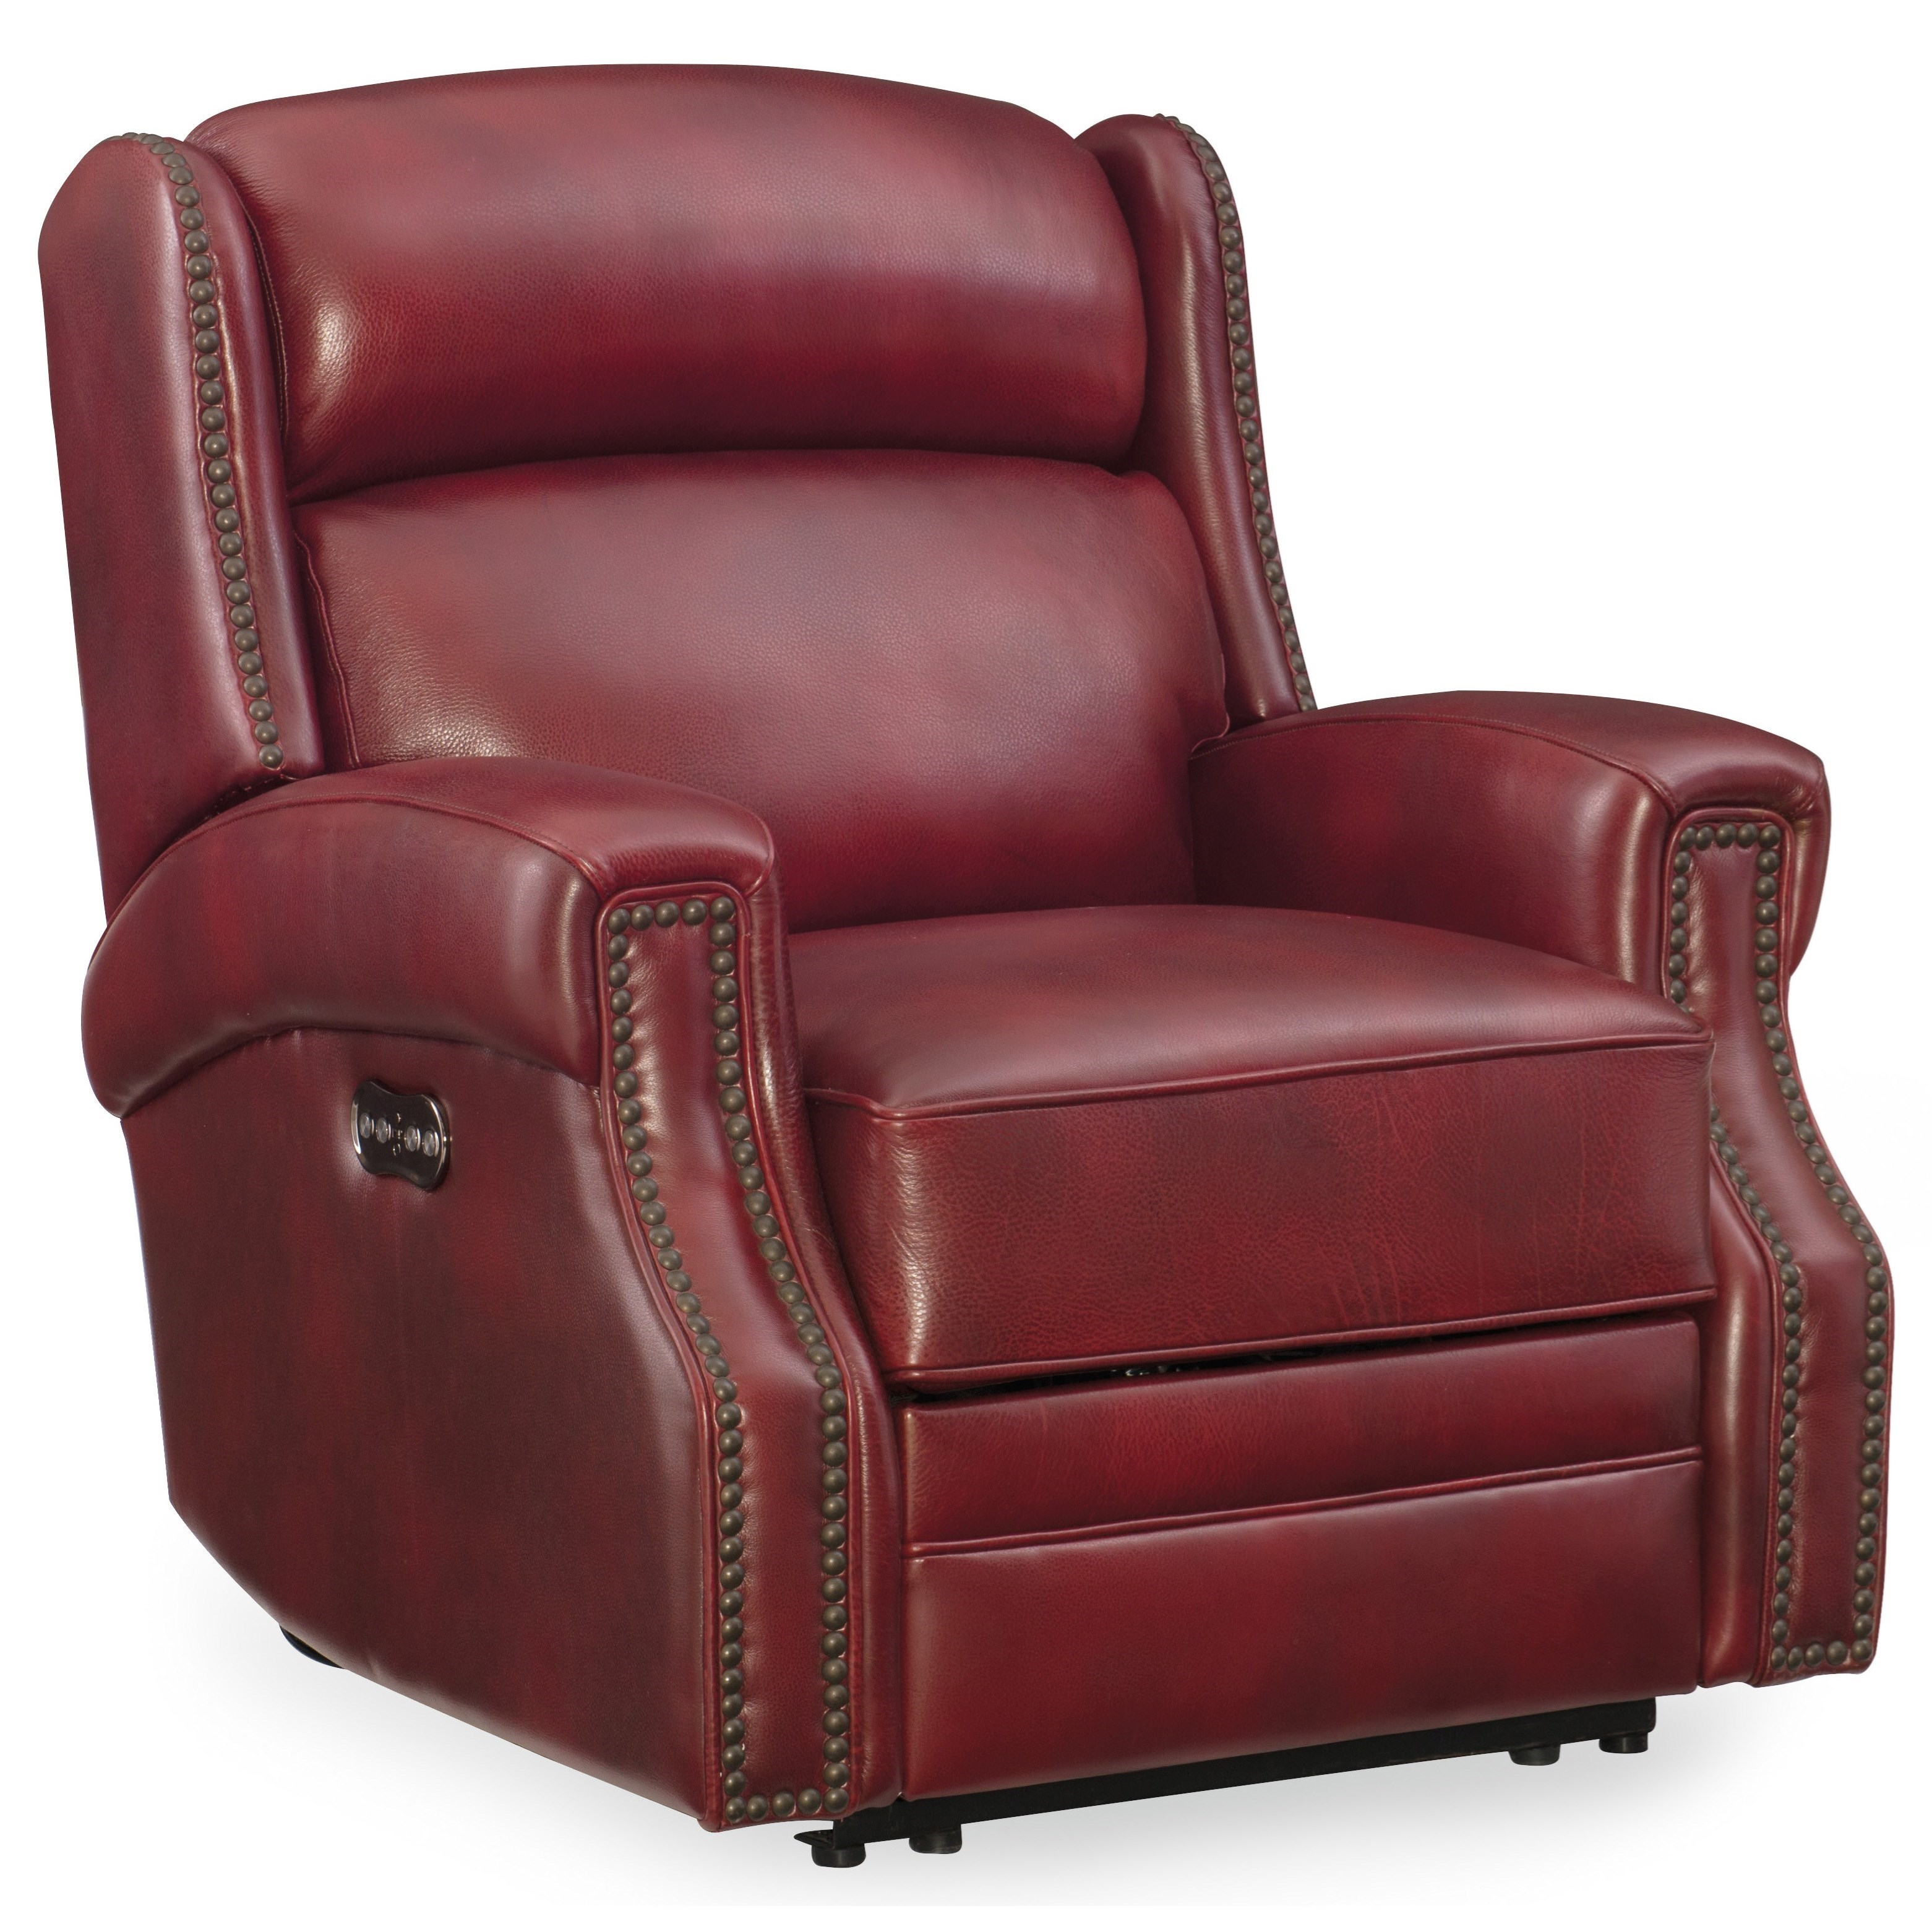 Carlisle Power Recliner with Power Headrest by Hooker Furniture at Baer's Furniture